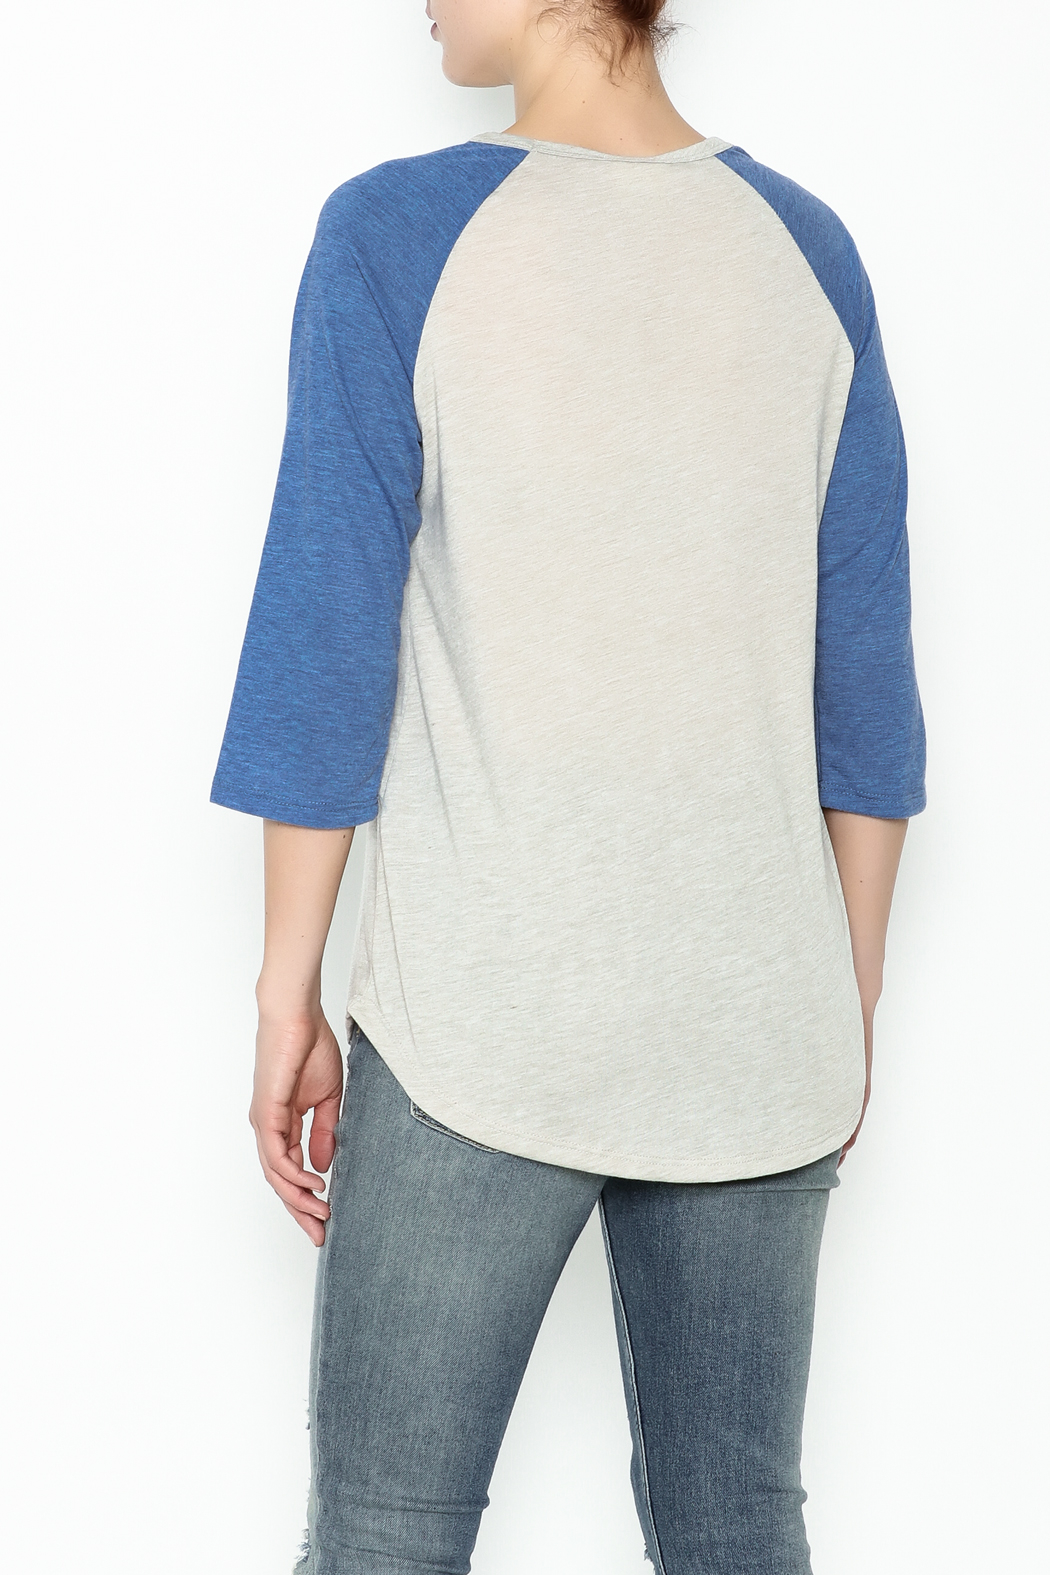 Daisey Ray Hustle Long Sleeve Top - Back Cropped Image